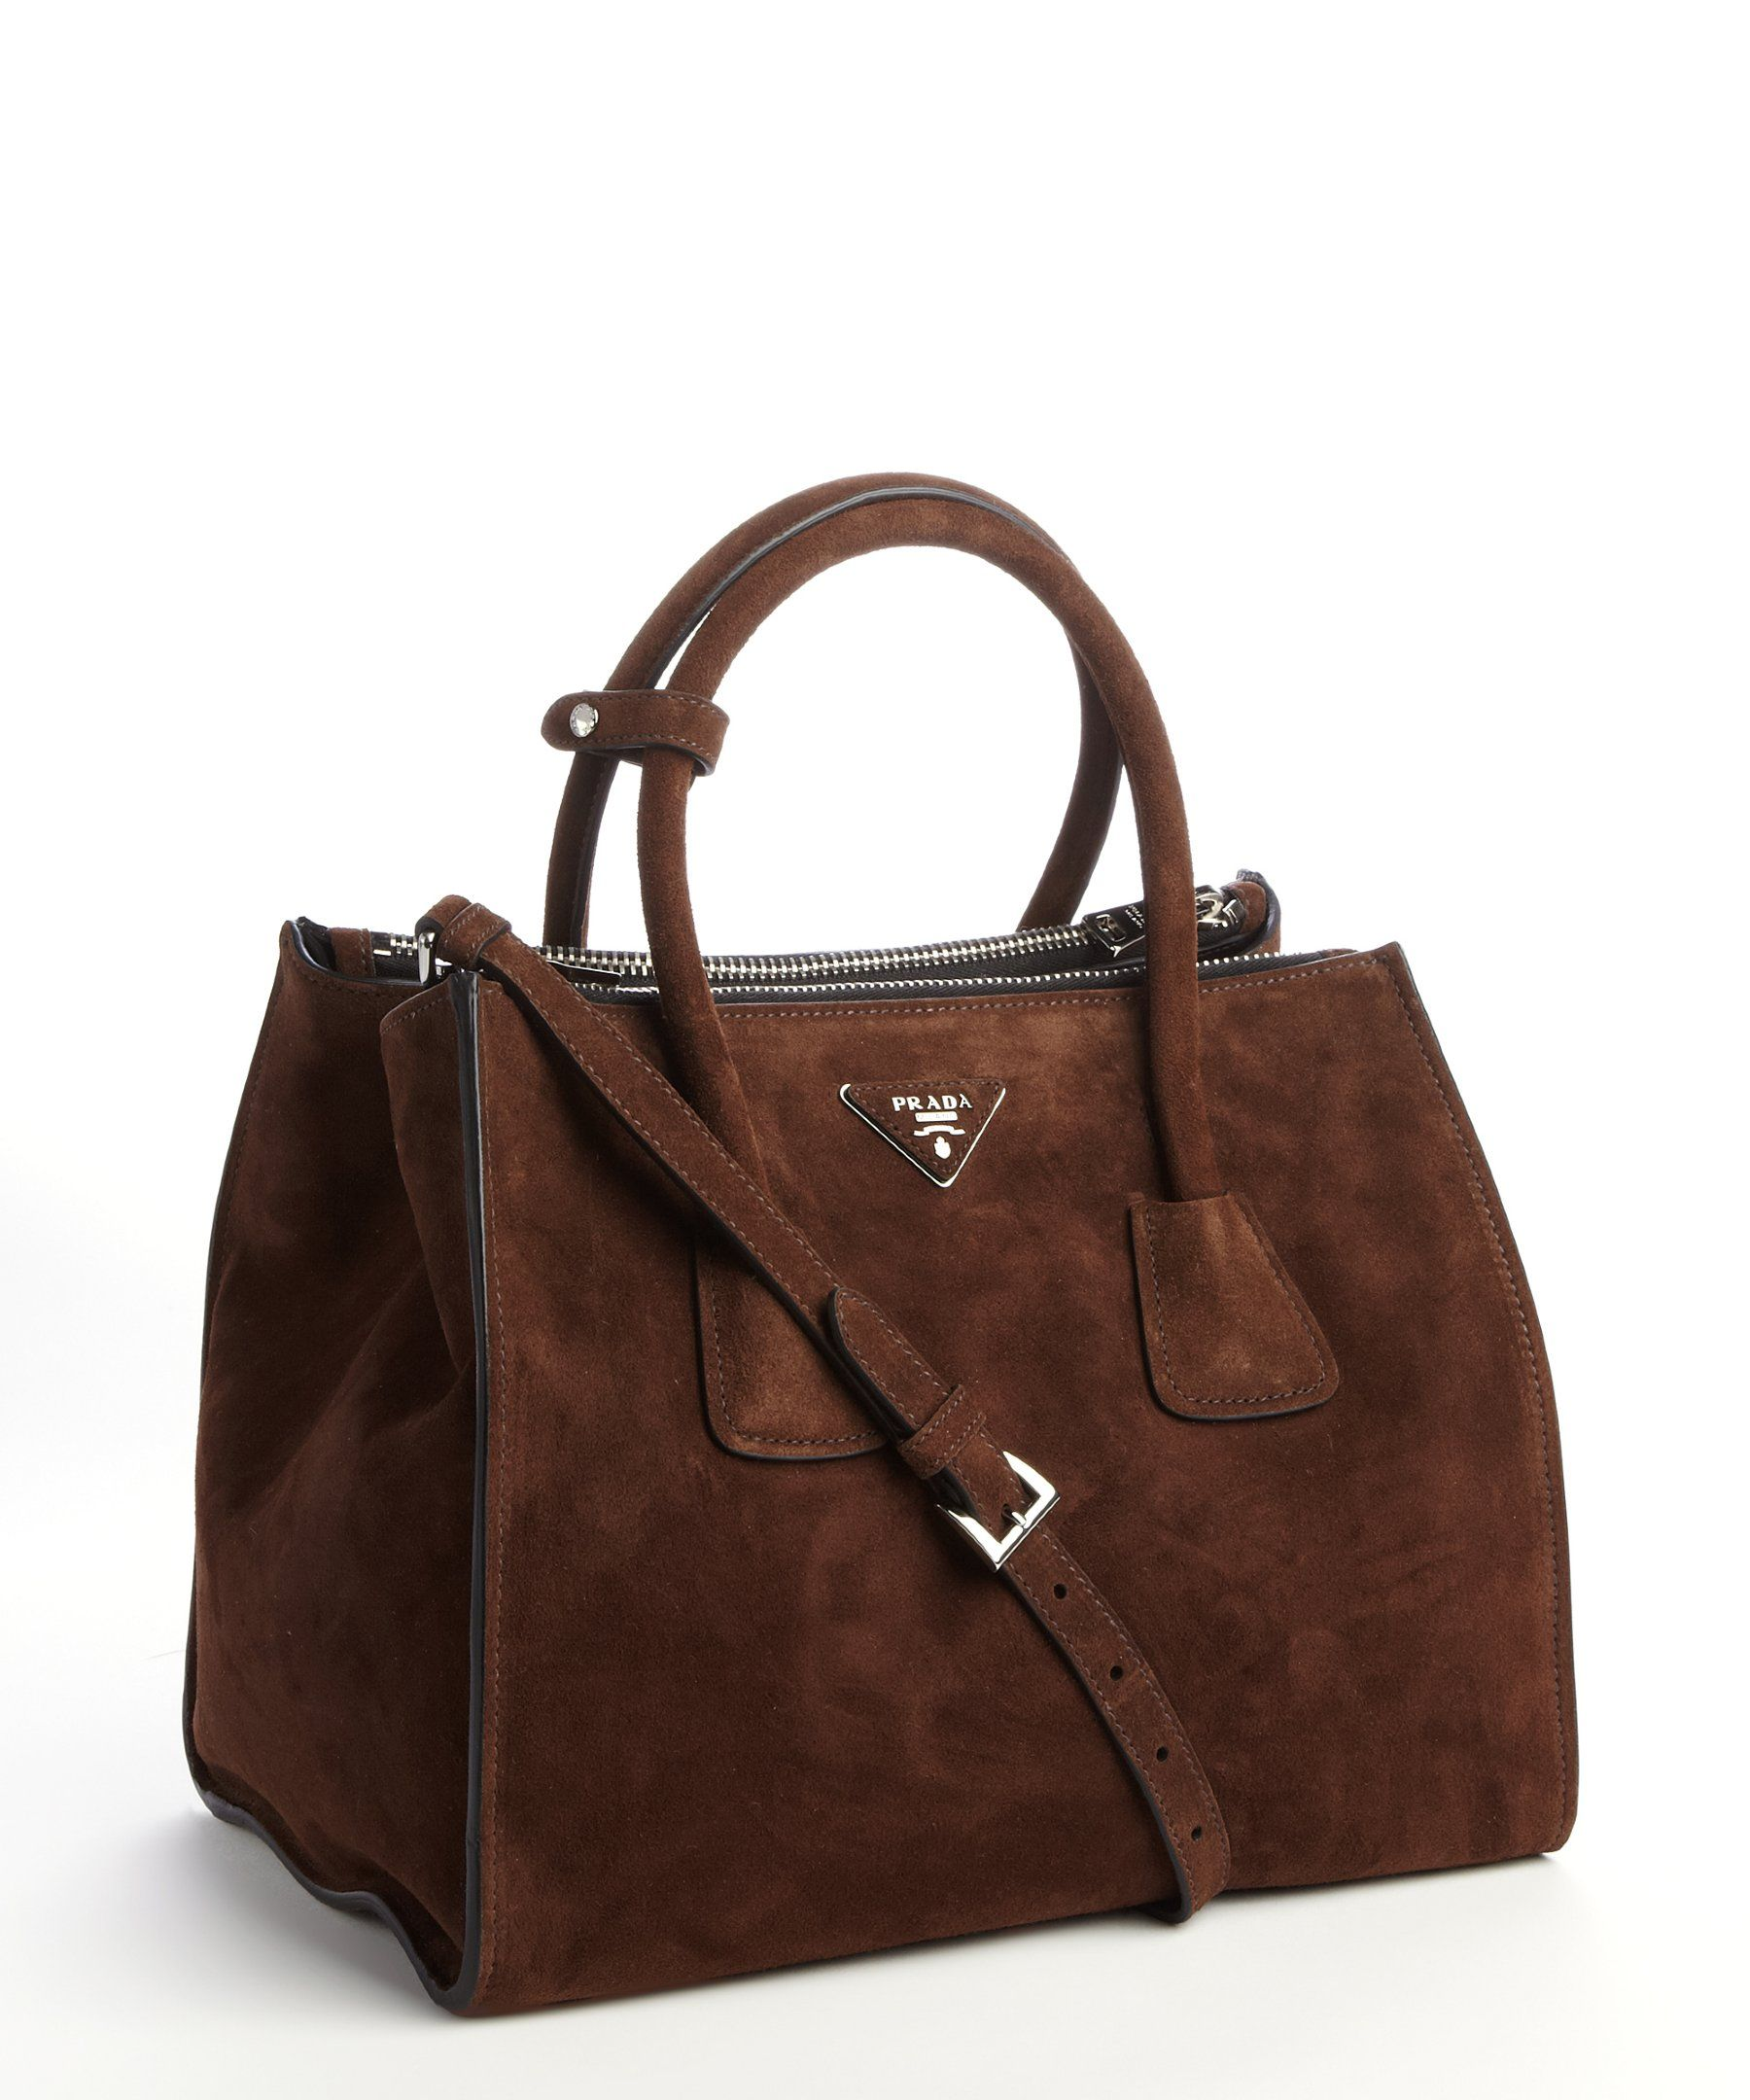 7719893ac0 Prada brown suede twin pocket tote bag